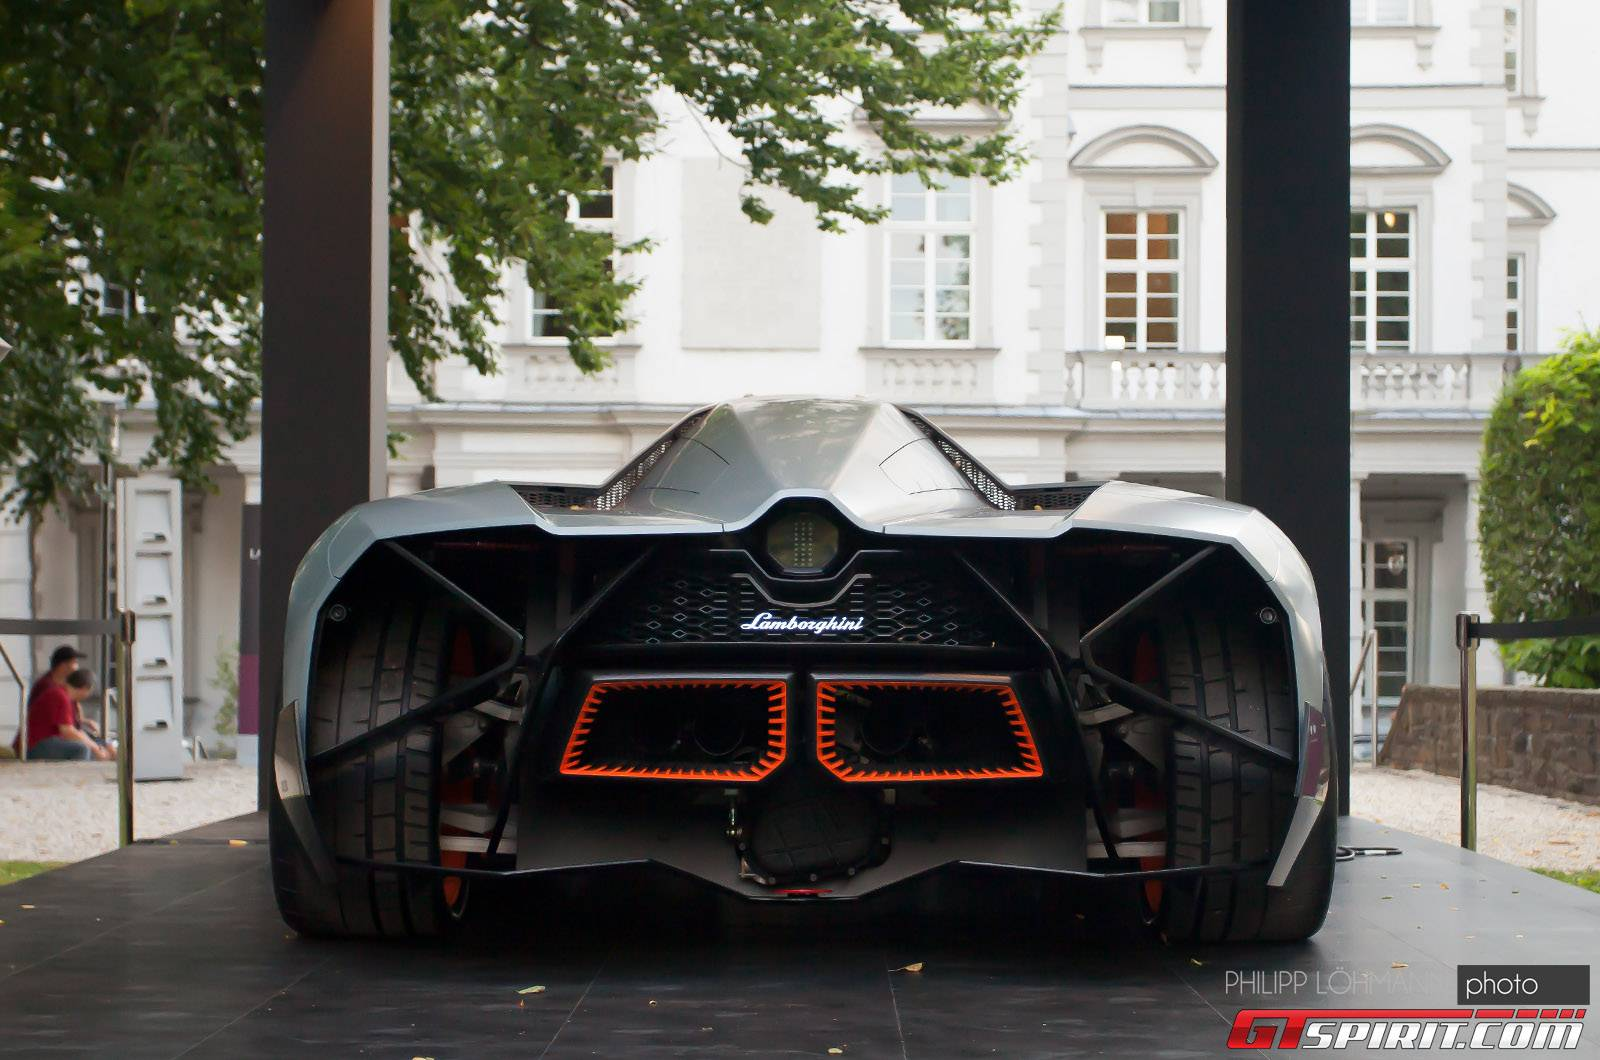 Earthu0027s Very Own Spaceship: The Lamborghini Egoista!